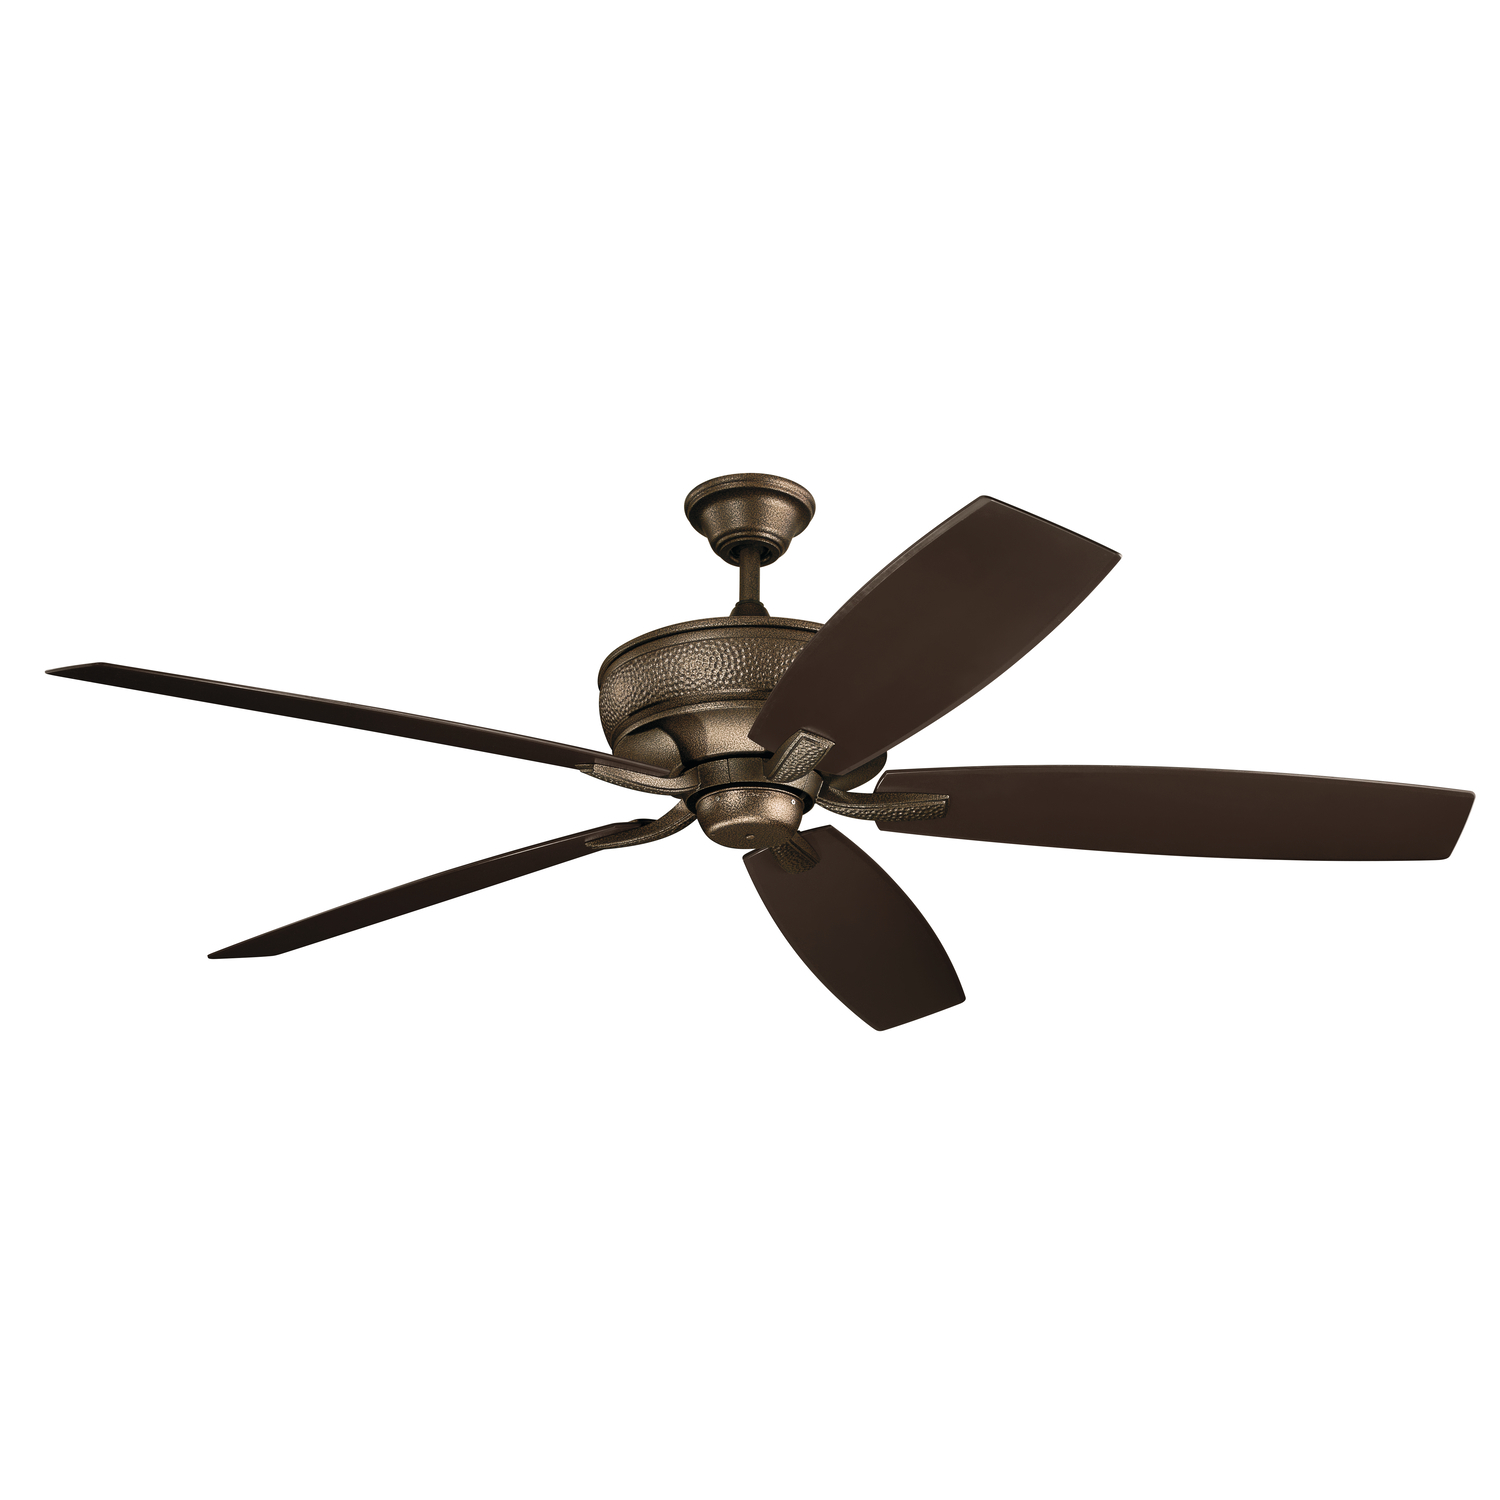 70 inchCeiling Fan from the Monarch collection by Kichler 310206WCP